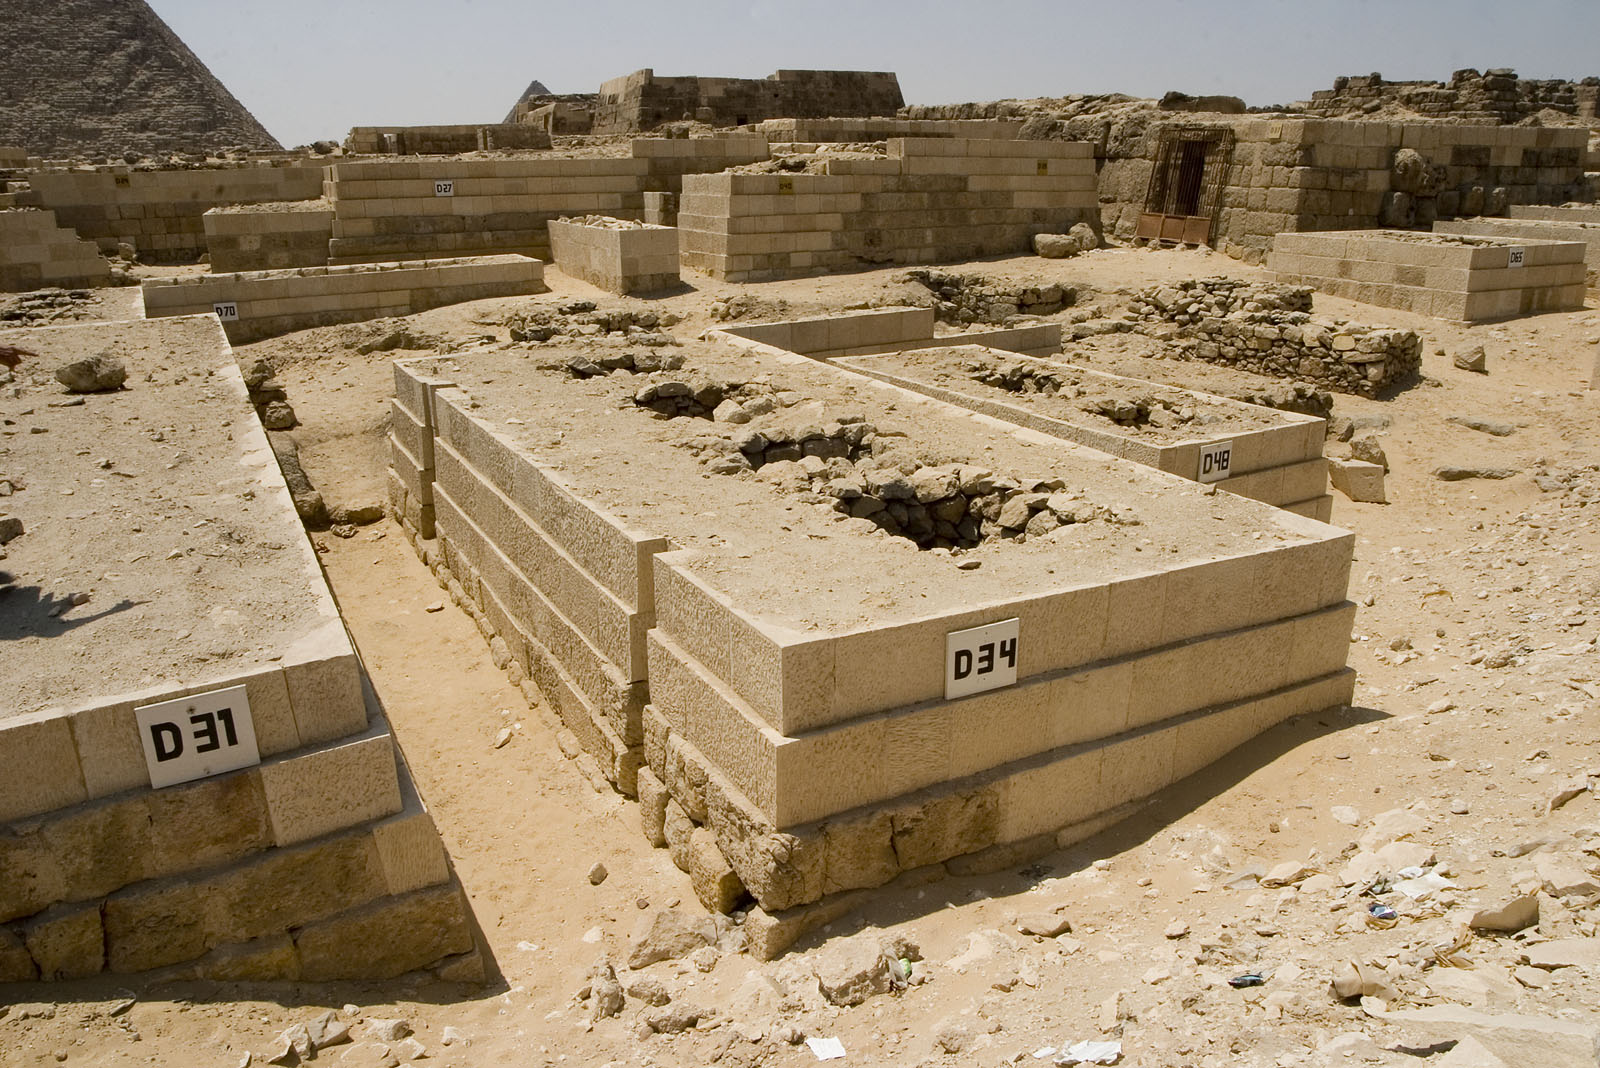 Western Cemetery: Site: Giza; View: D 31, D 34